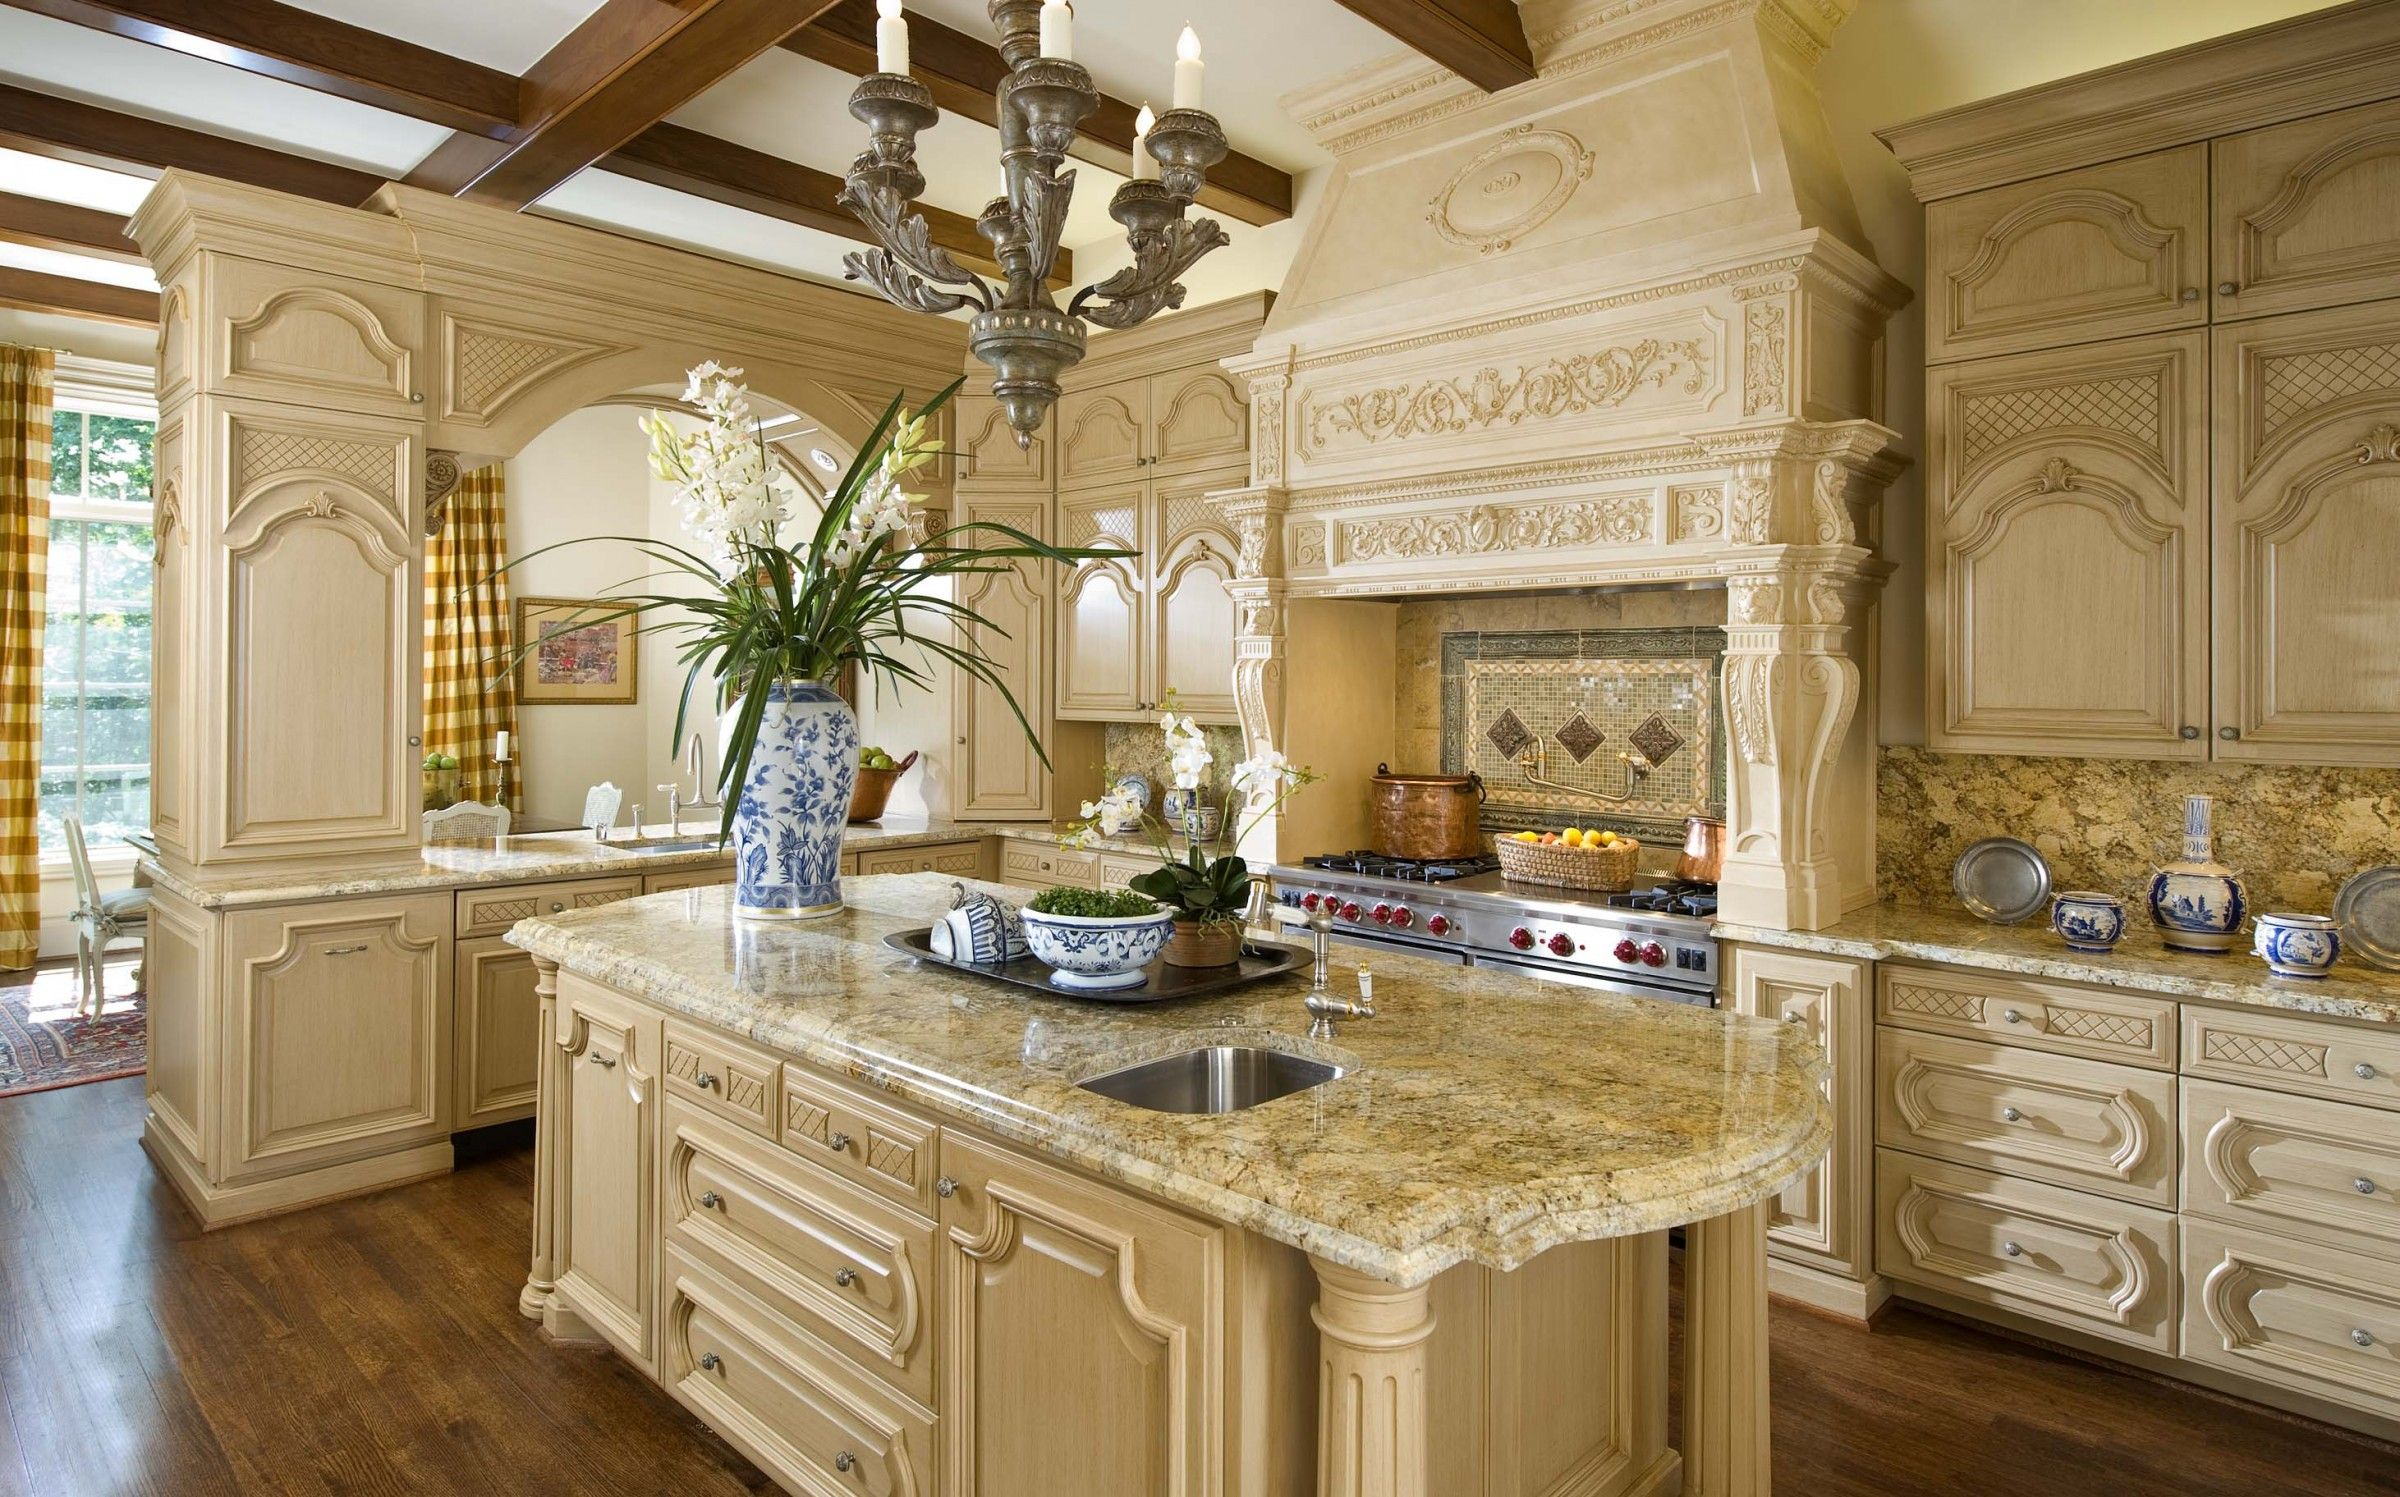 french country kitchen home photo - 9